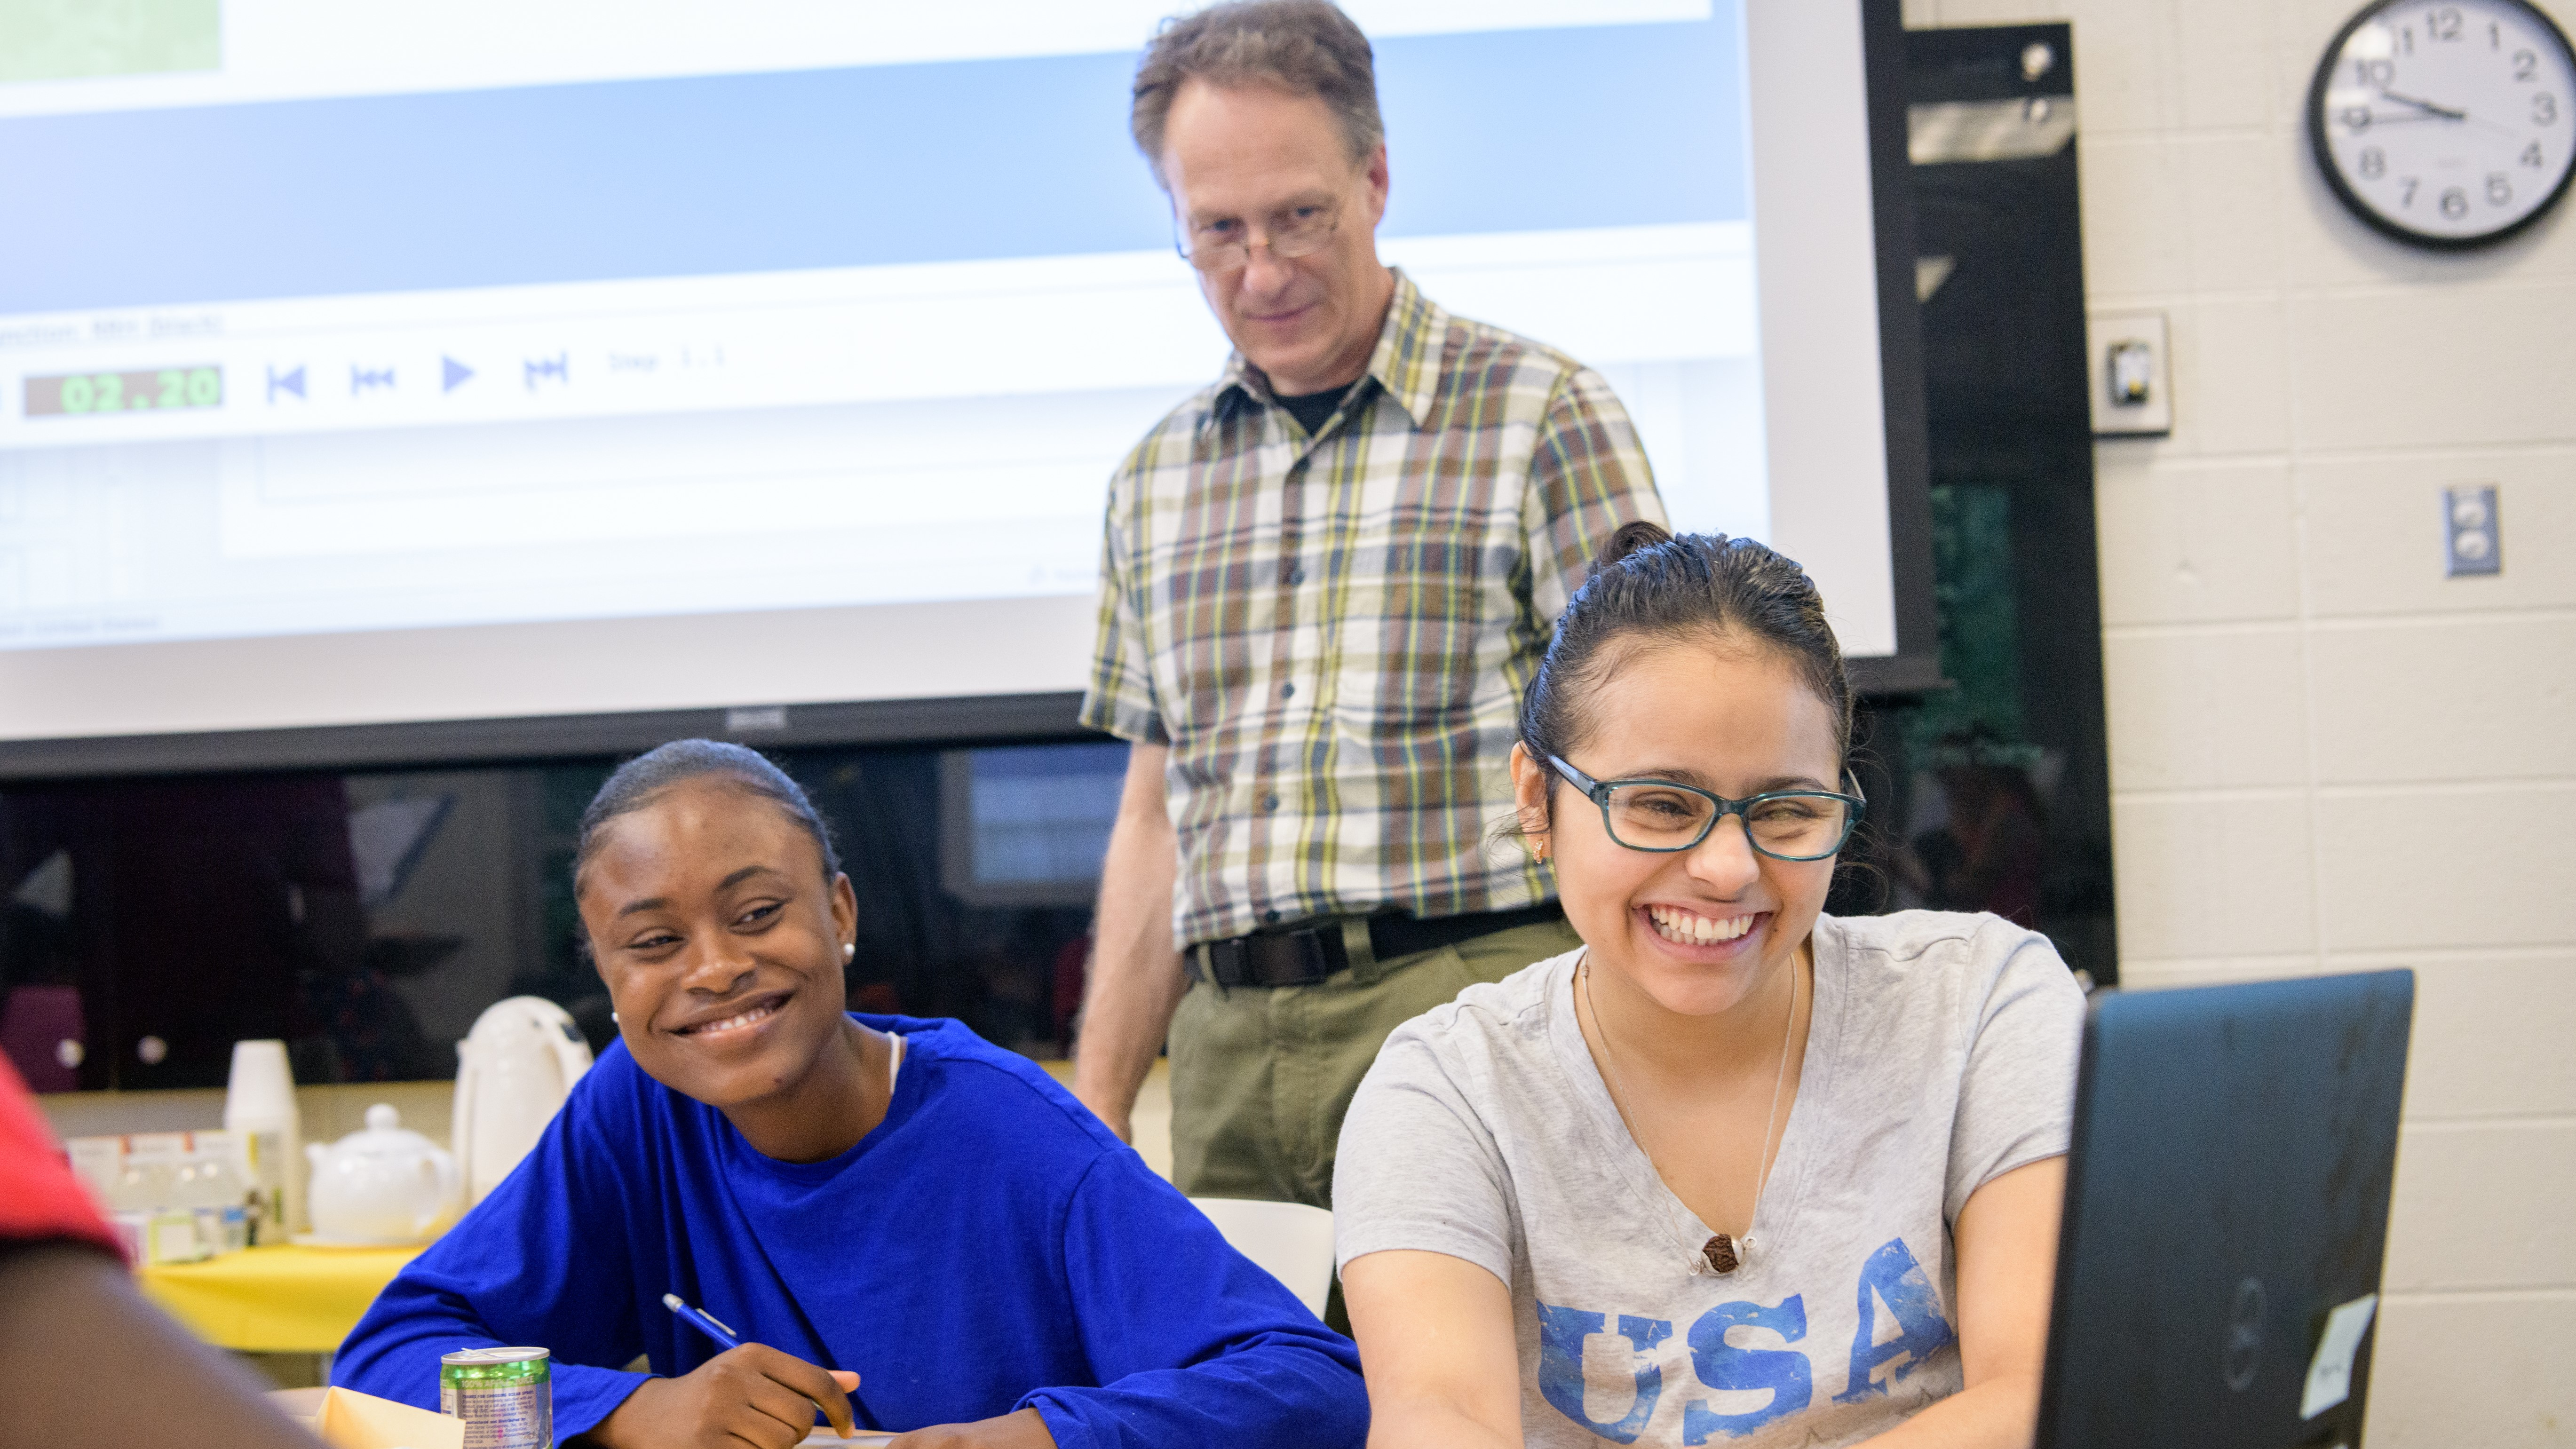 Associate Professor Charles Hohensee, a joint faculty in the School of Education and Mathematics Education Research, is running a summer math program at UD for 15-20 local high school students as part of a $750,000 NSF grant. Photographed for a story in UDaily and to promote his research.